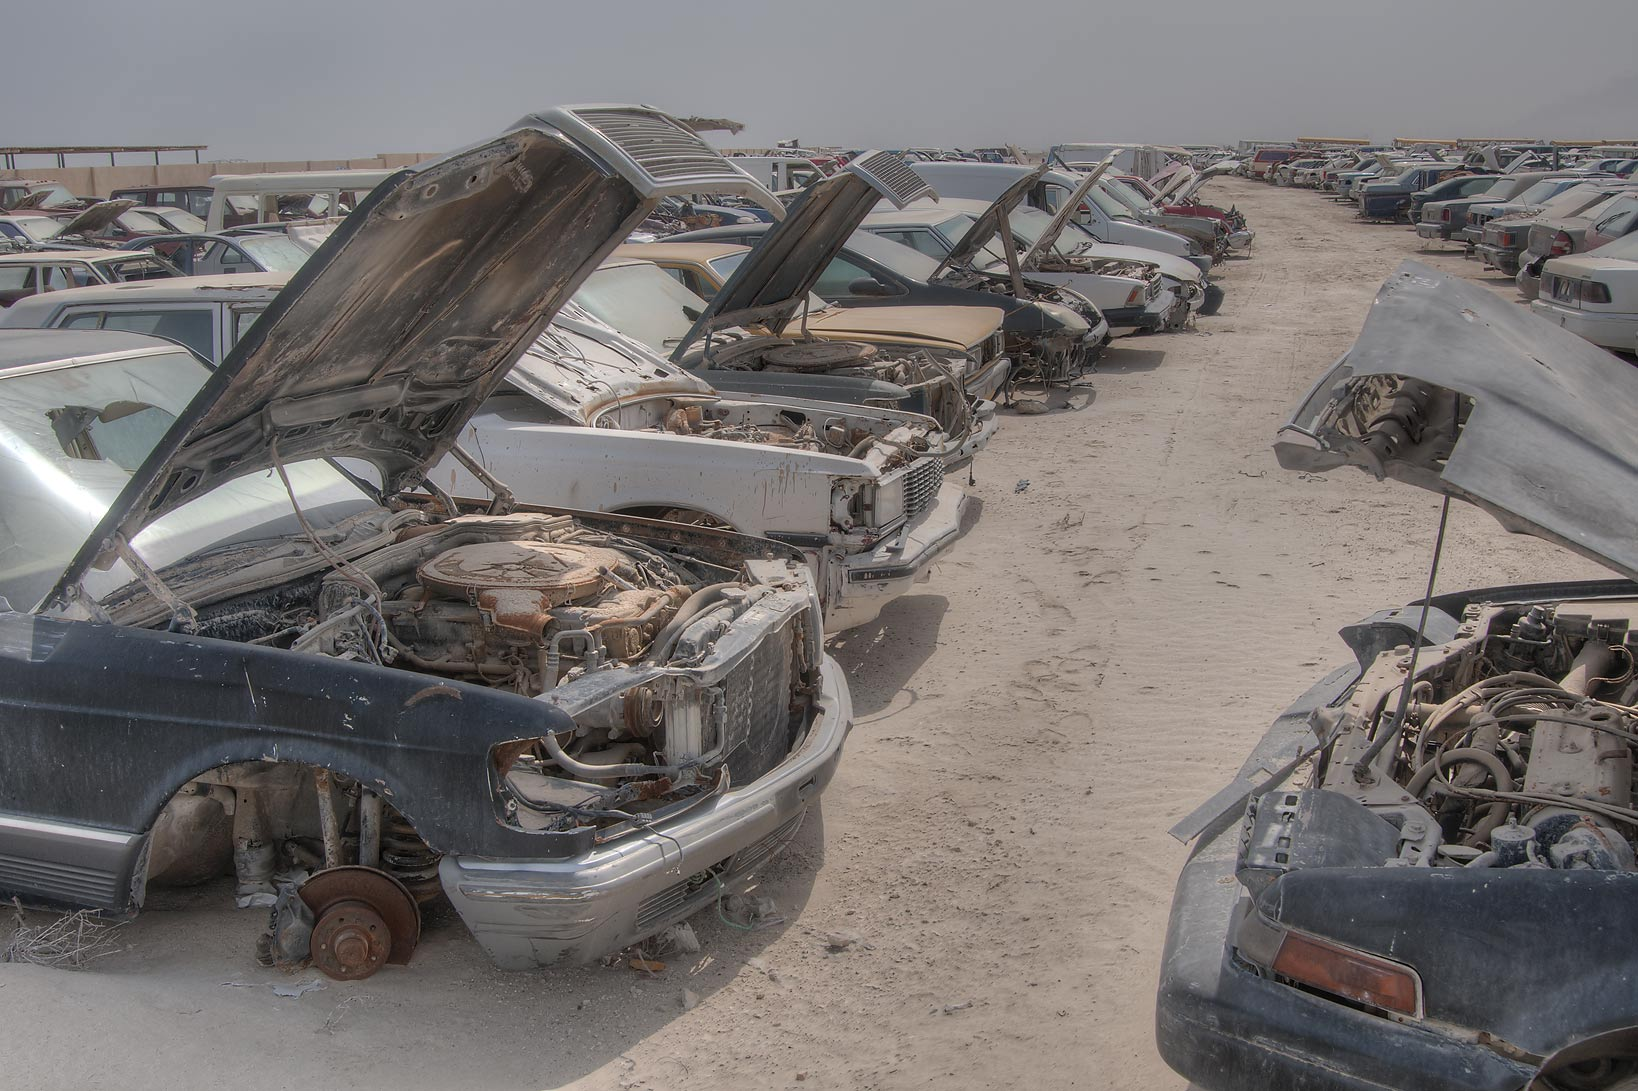 Car junkyard - search in pictures